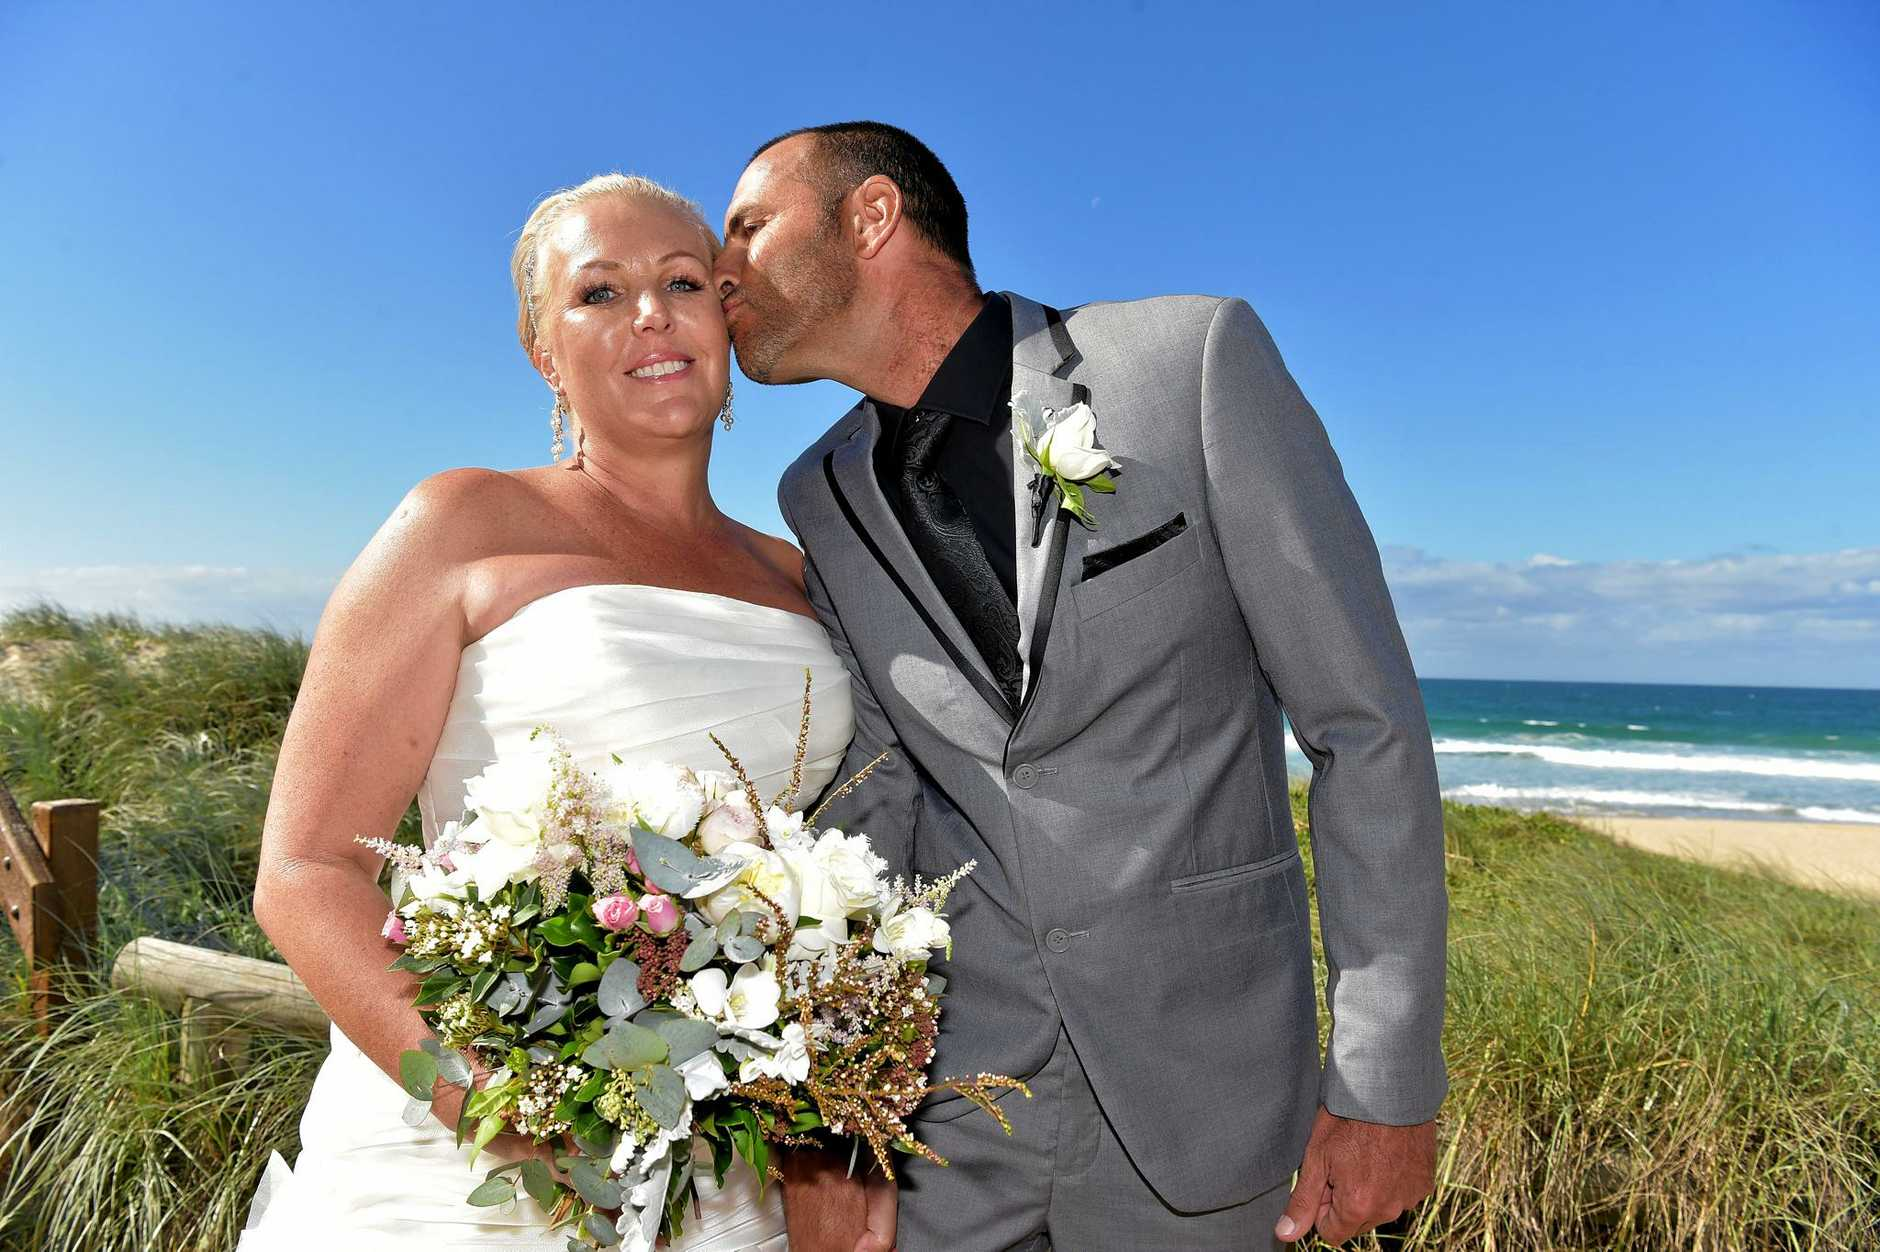 Donna Penny and her husband, Jason renew their wedding vows thanks to 'My Wedding Wish'